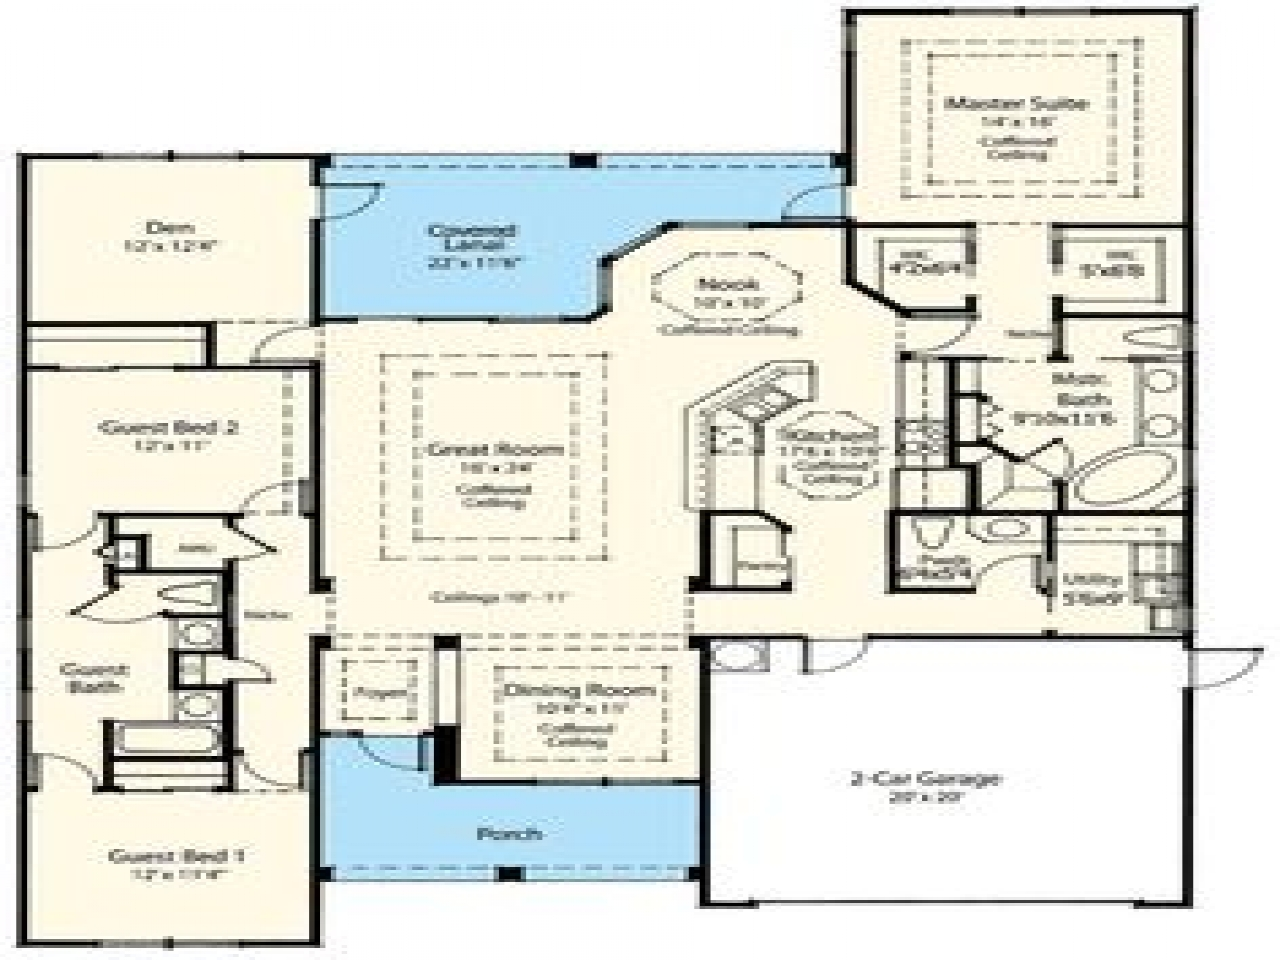 28 x 50 narrow lot house plans wine bar design lake home for Lake home plans for narrow lots